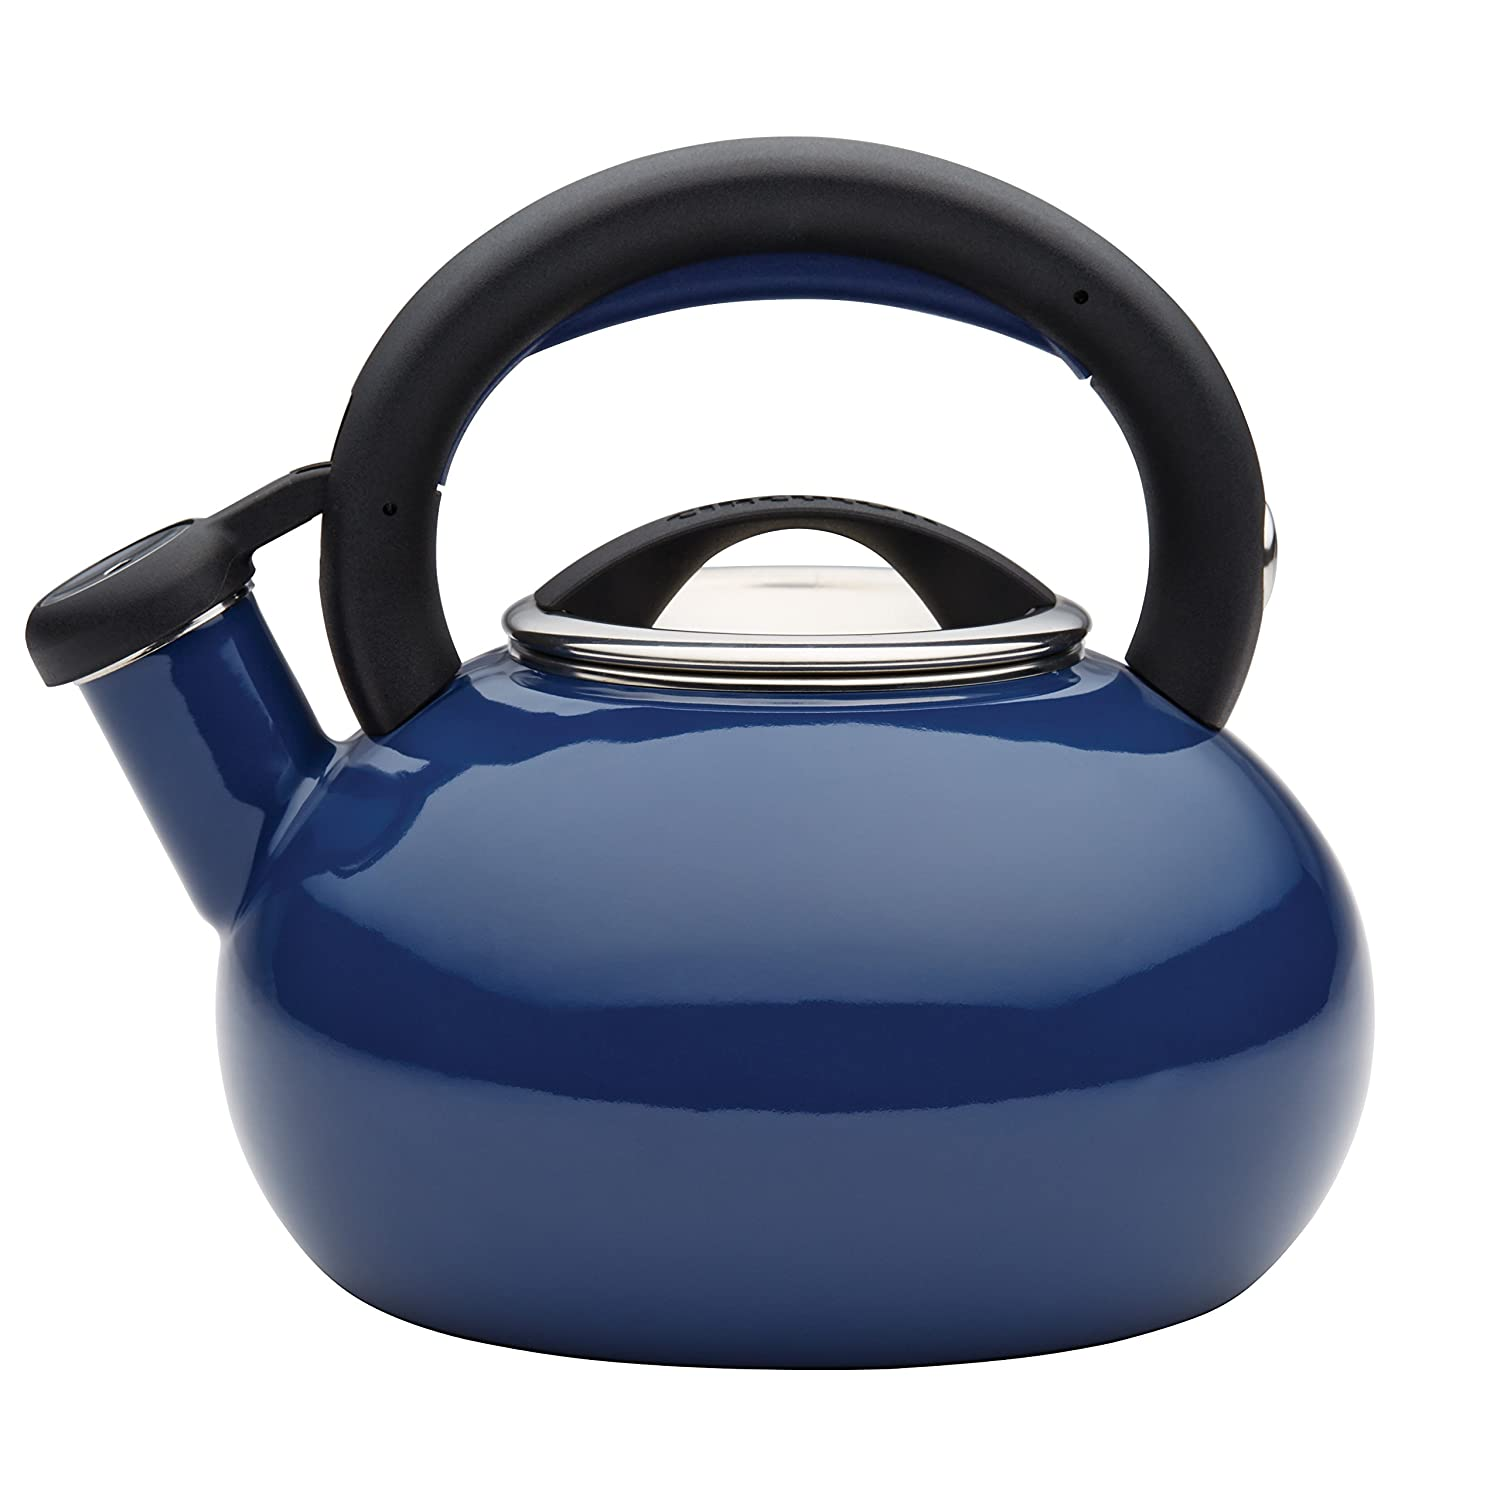 amazoncom circulon teakettles sunrise whistling teakettle    - amazoncom circulon teakettles sunrise whistling teakettle  quartnavy blue kitchen  dining